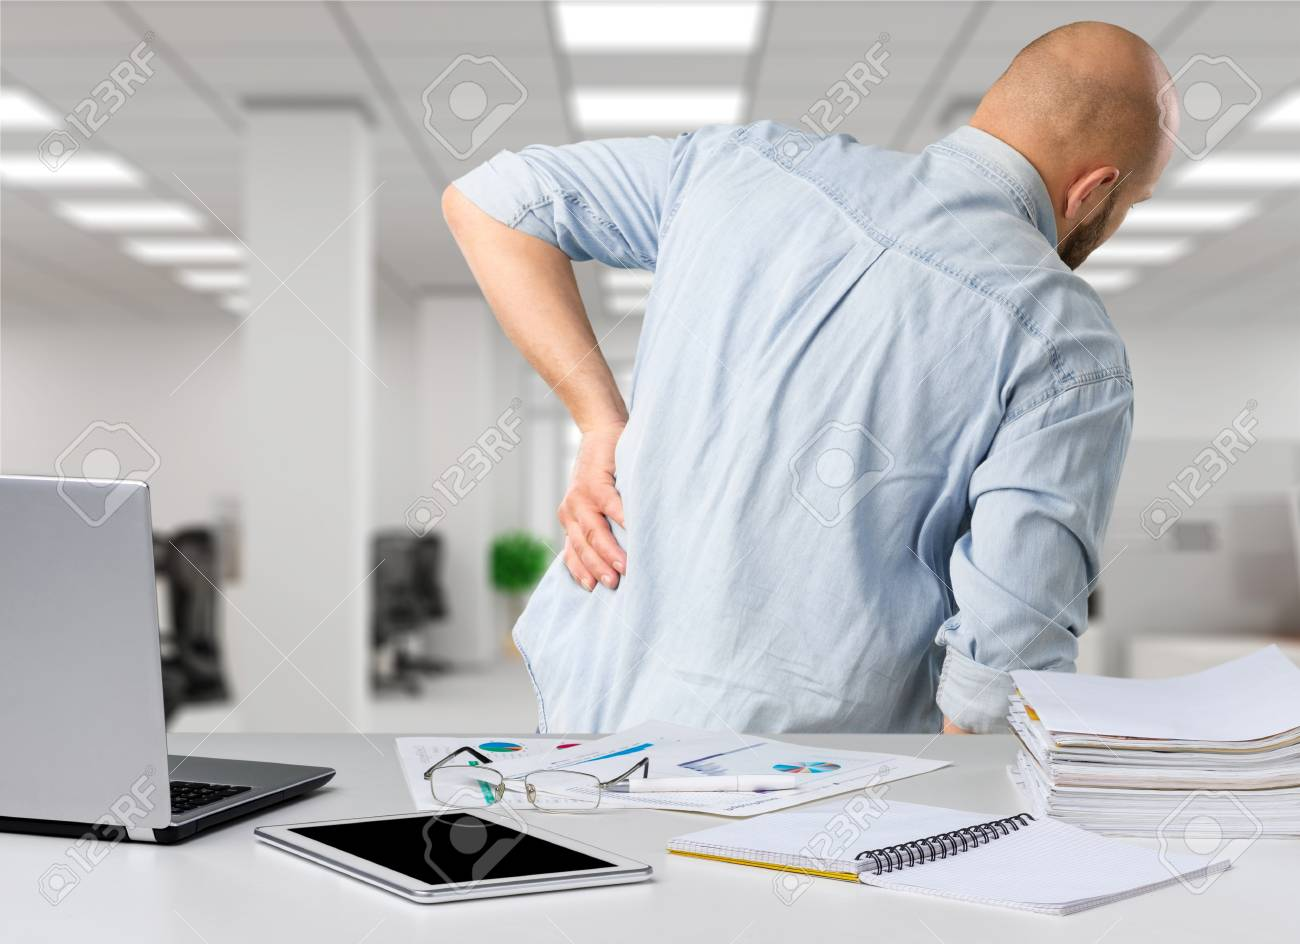 Business Man With Back Pain Sin An Office Pain Relief Concept Stock Photo Picture And Royalty Free Image Image 94693683